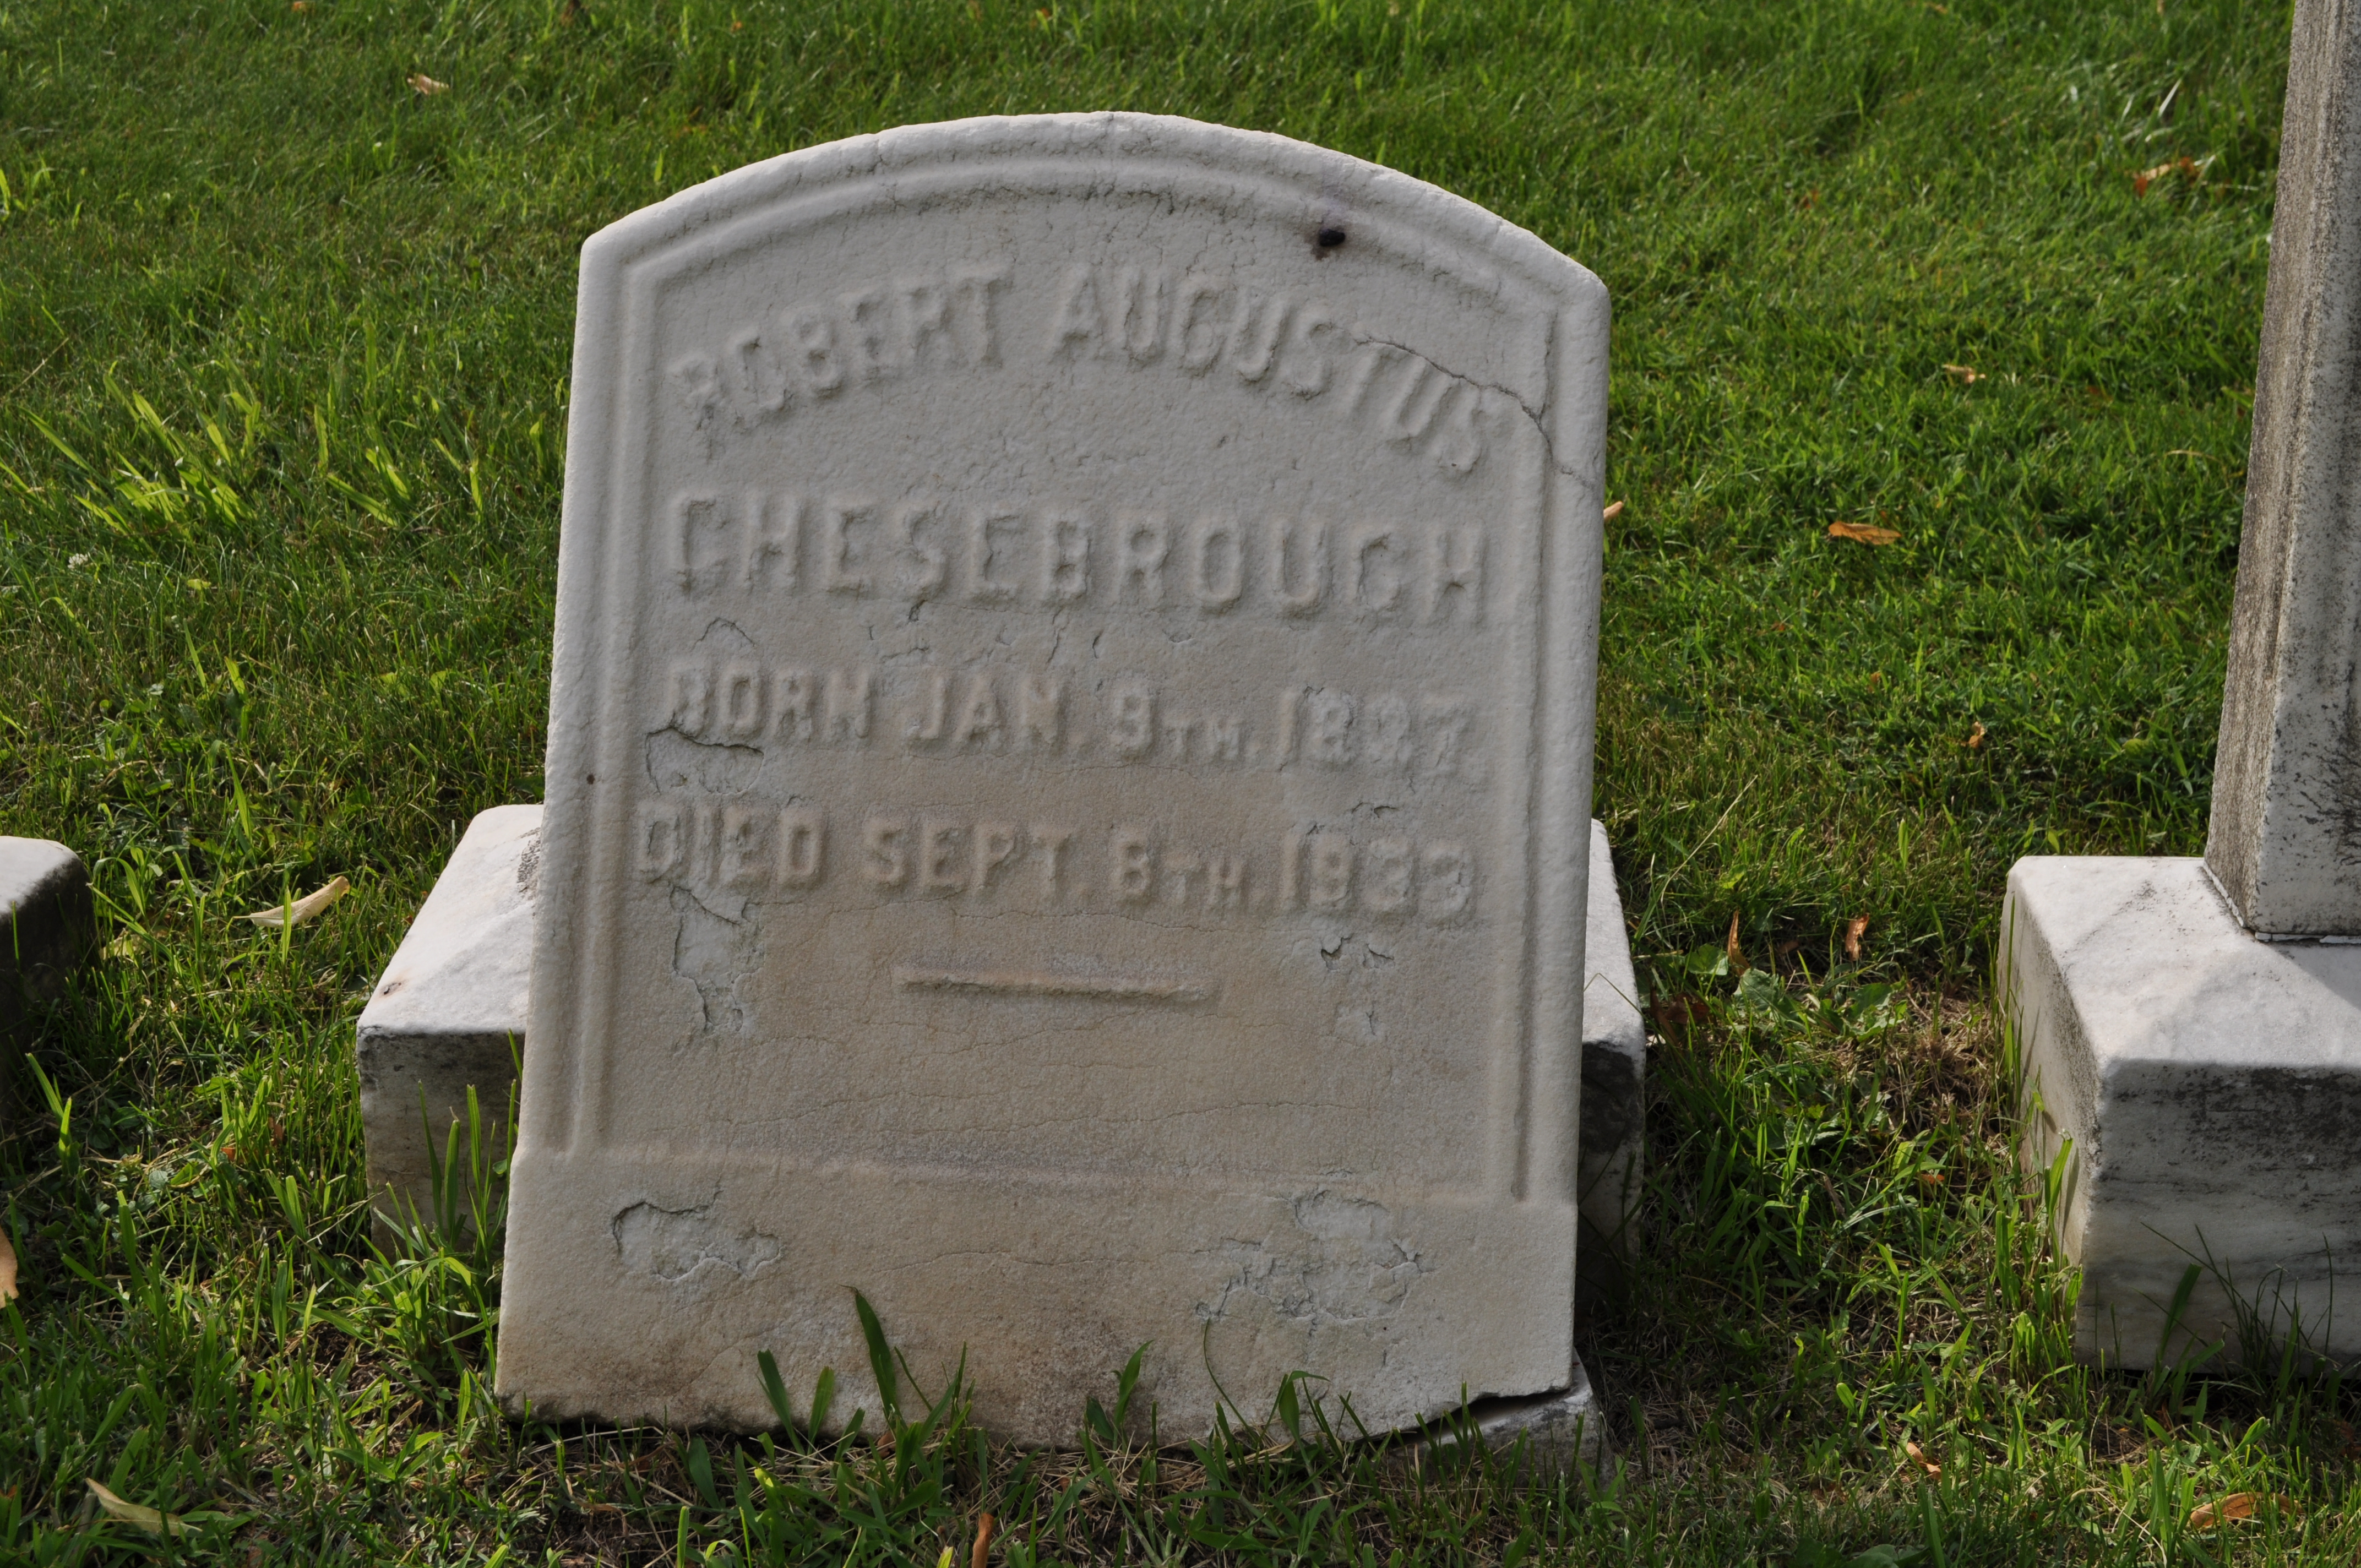 Robert Augustus Chesebrough